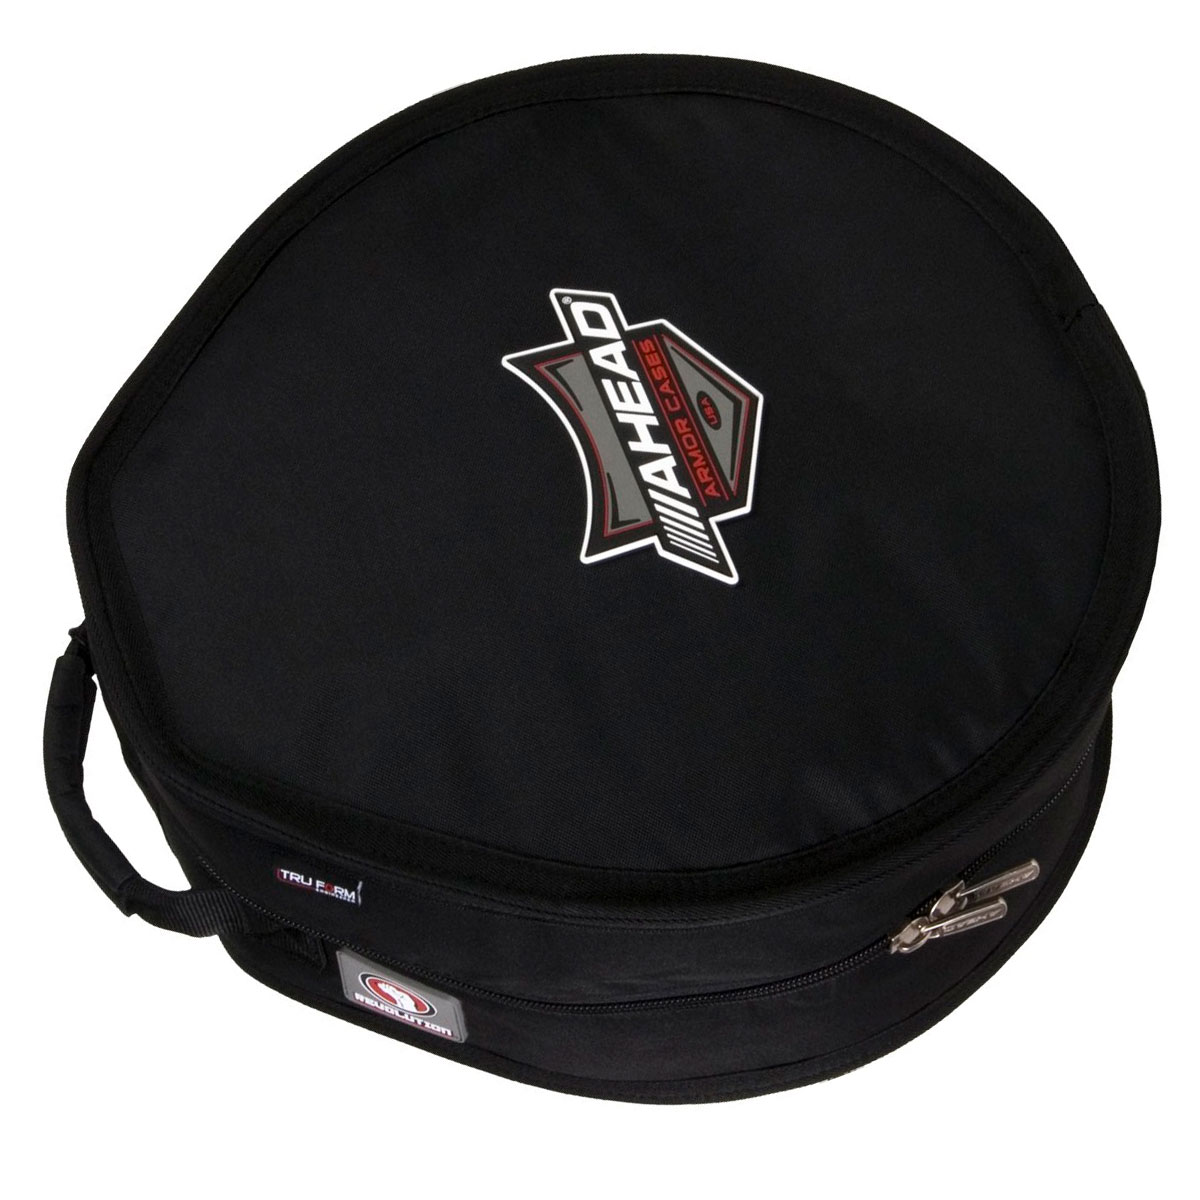 "Ahead Armor 5"" (Deep) x 13"" (Diameter) Piccolo Snare Case"